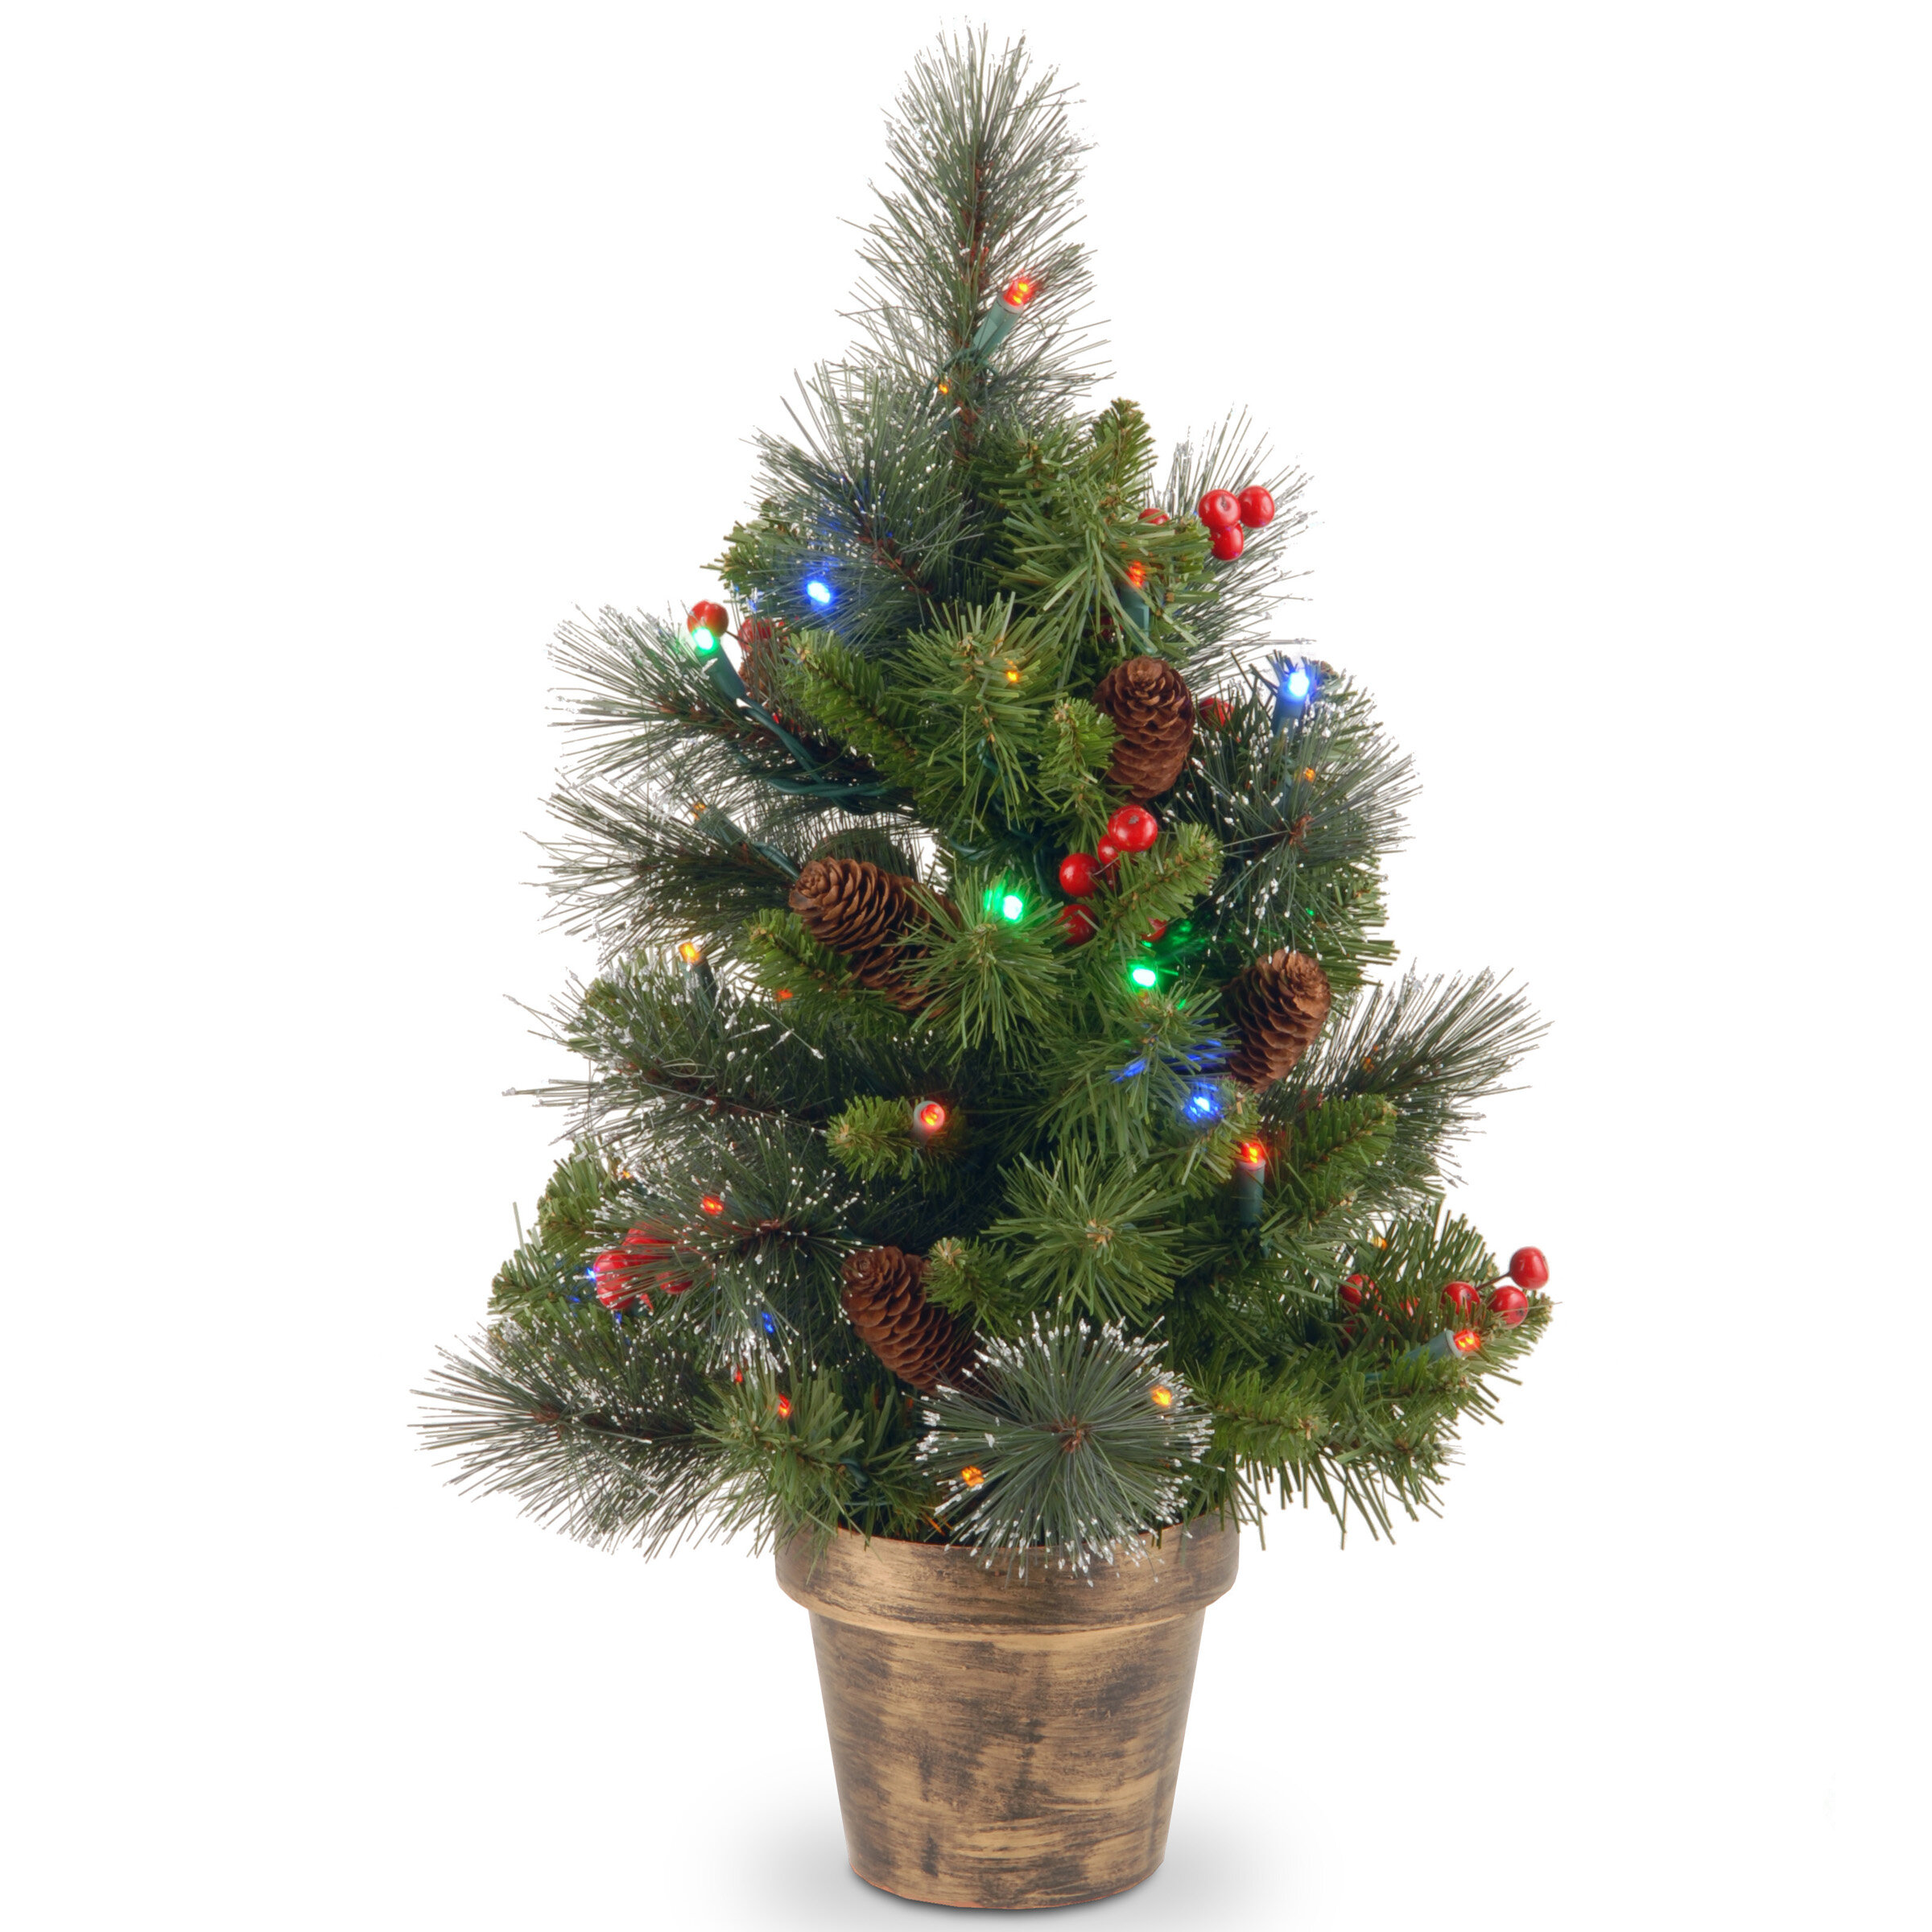 Three Posts Spruce Small 2' Green Artificial Christmas Tree with 35 Multicolored Lights & Reviews | Wayfair